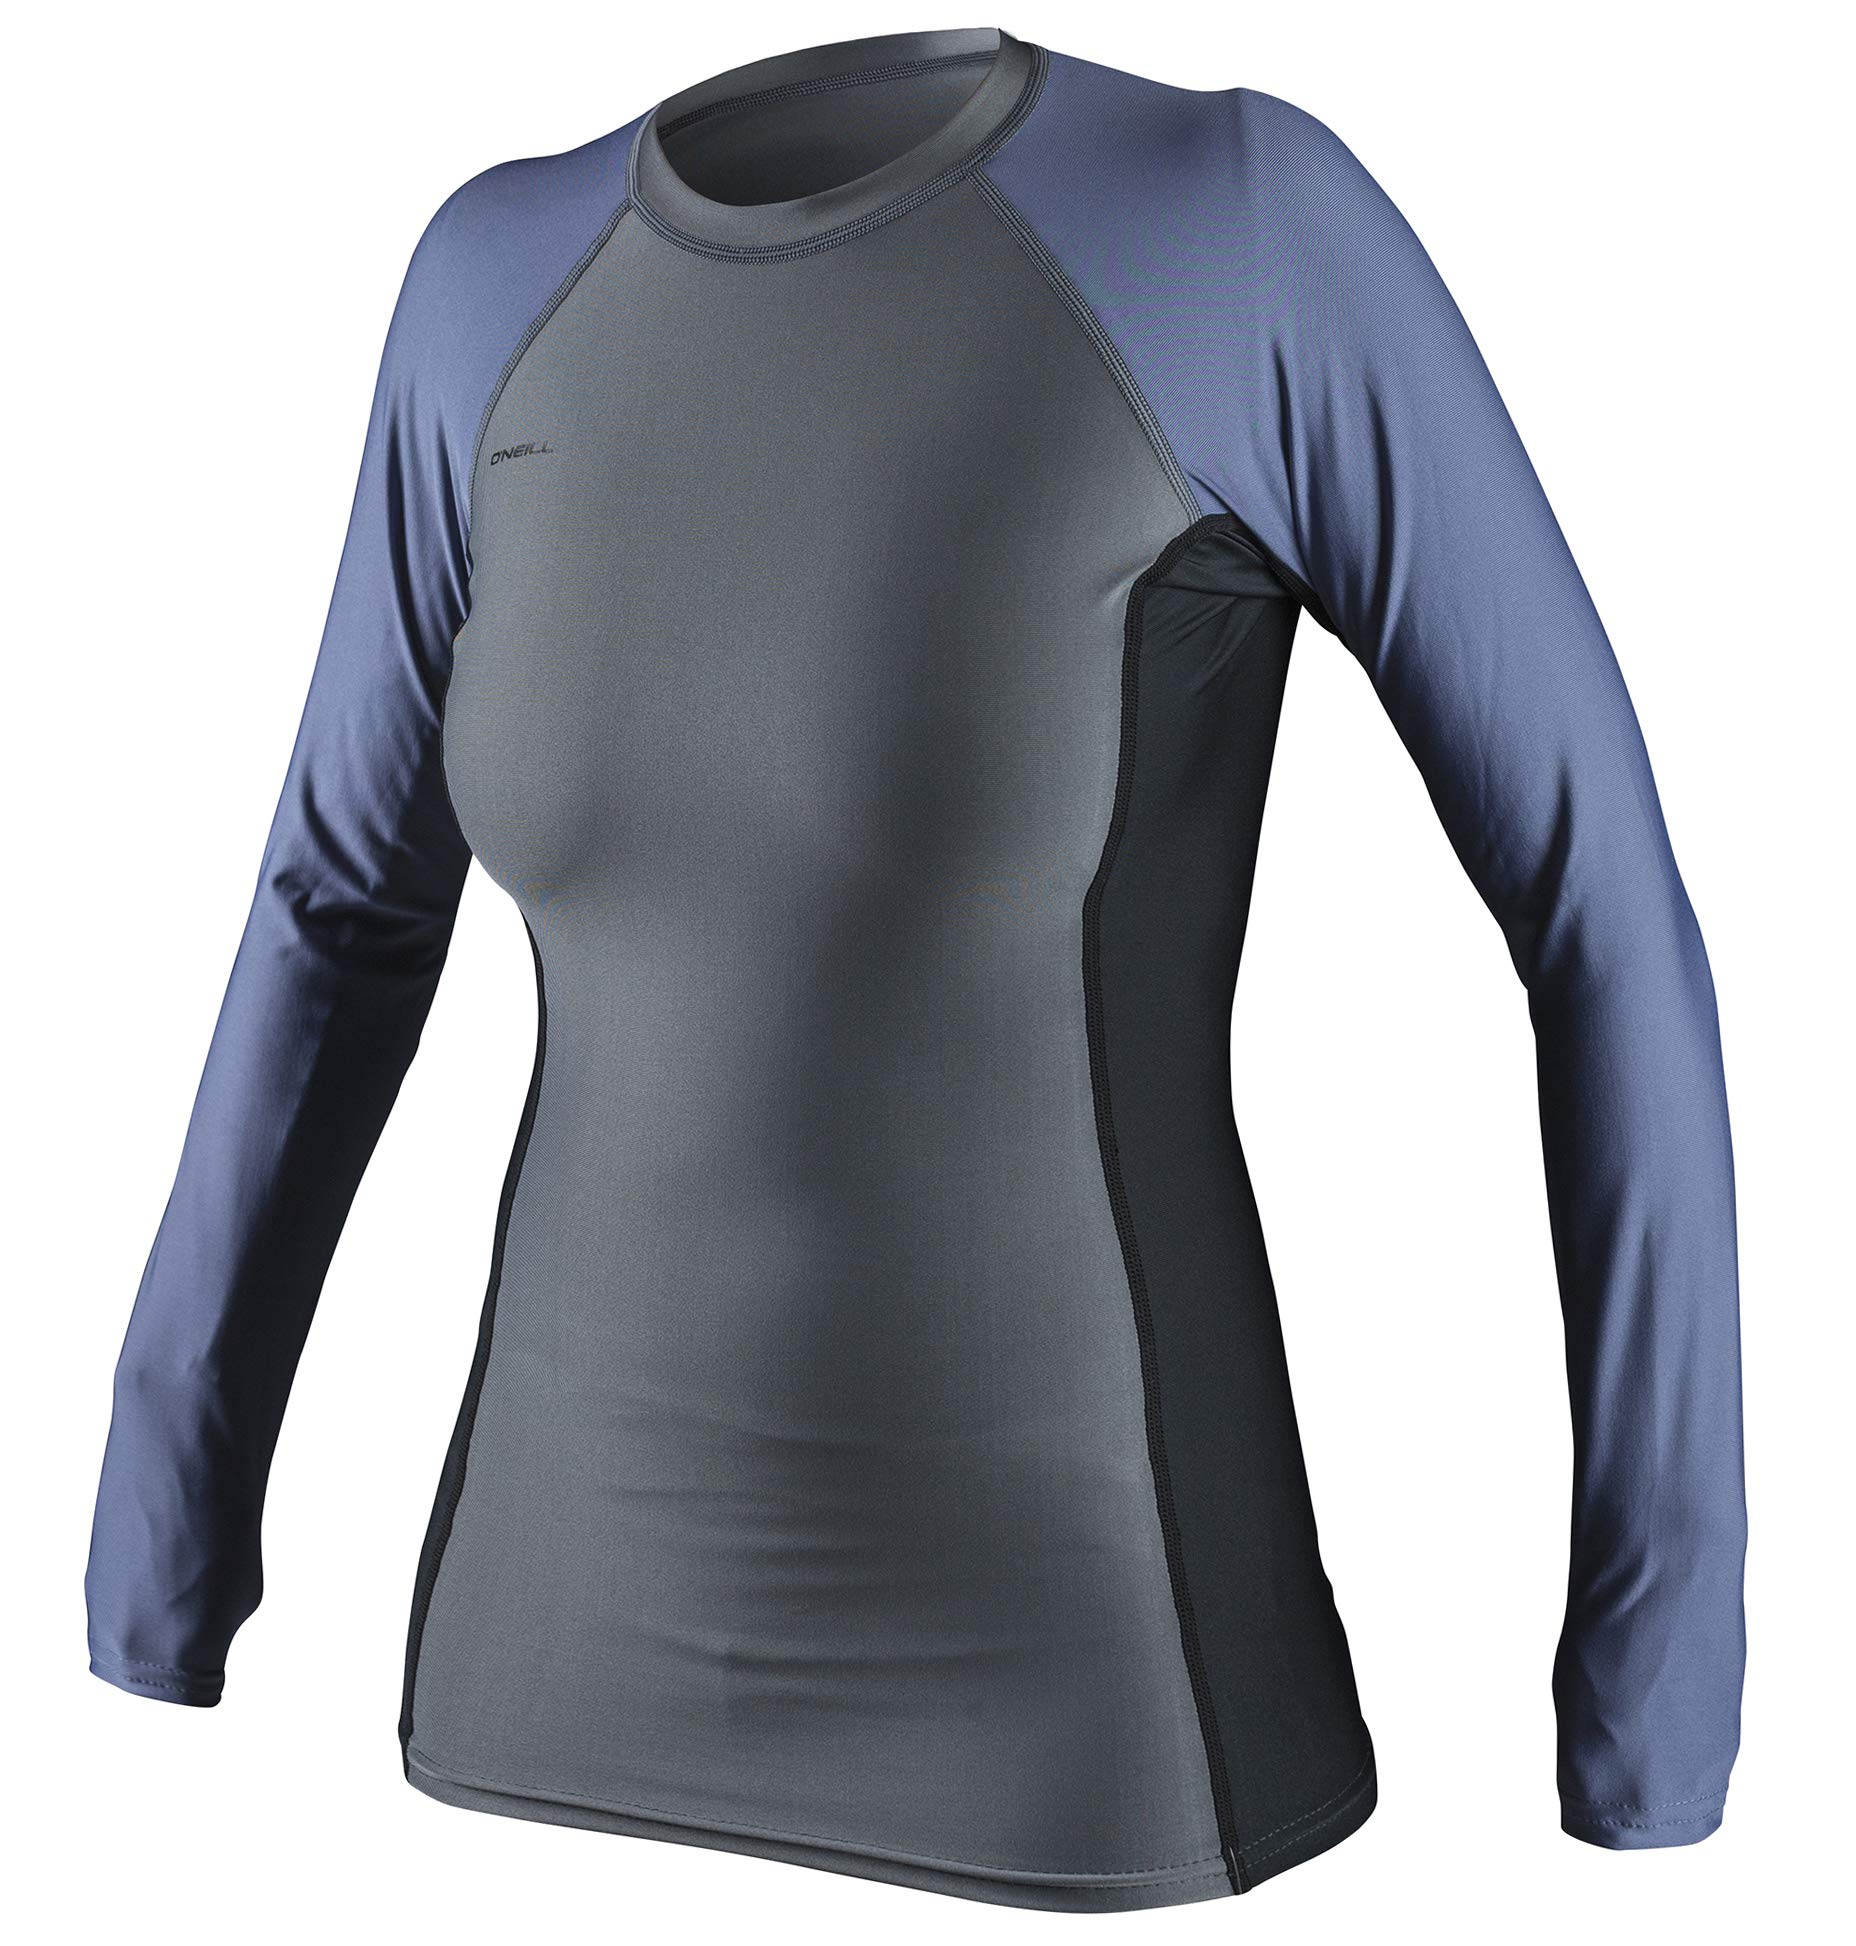 O'Neill Oneill Womens Basic Long Sleeve Rash Guard - Smoke BLK Mist - Smoke Black Mist, Small by O'Neill